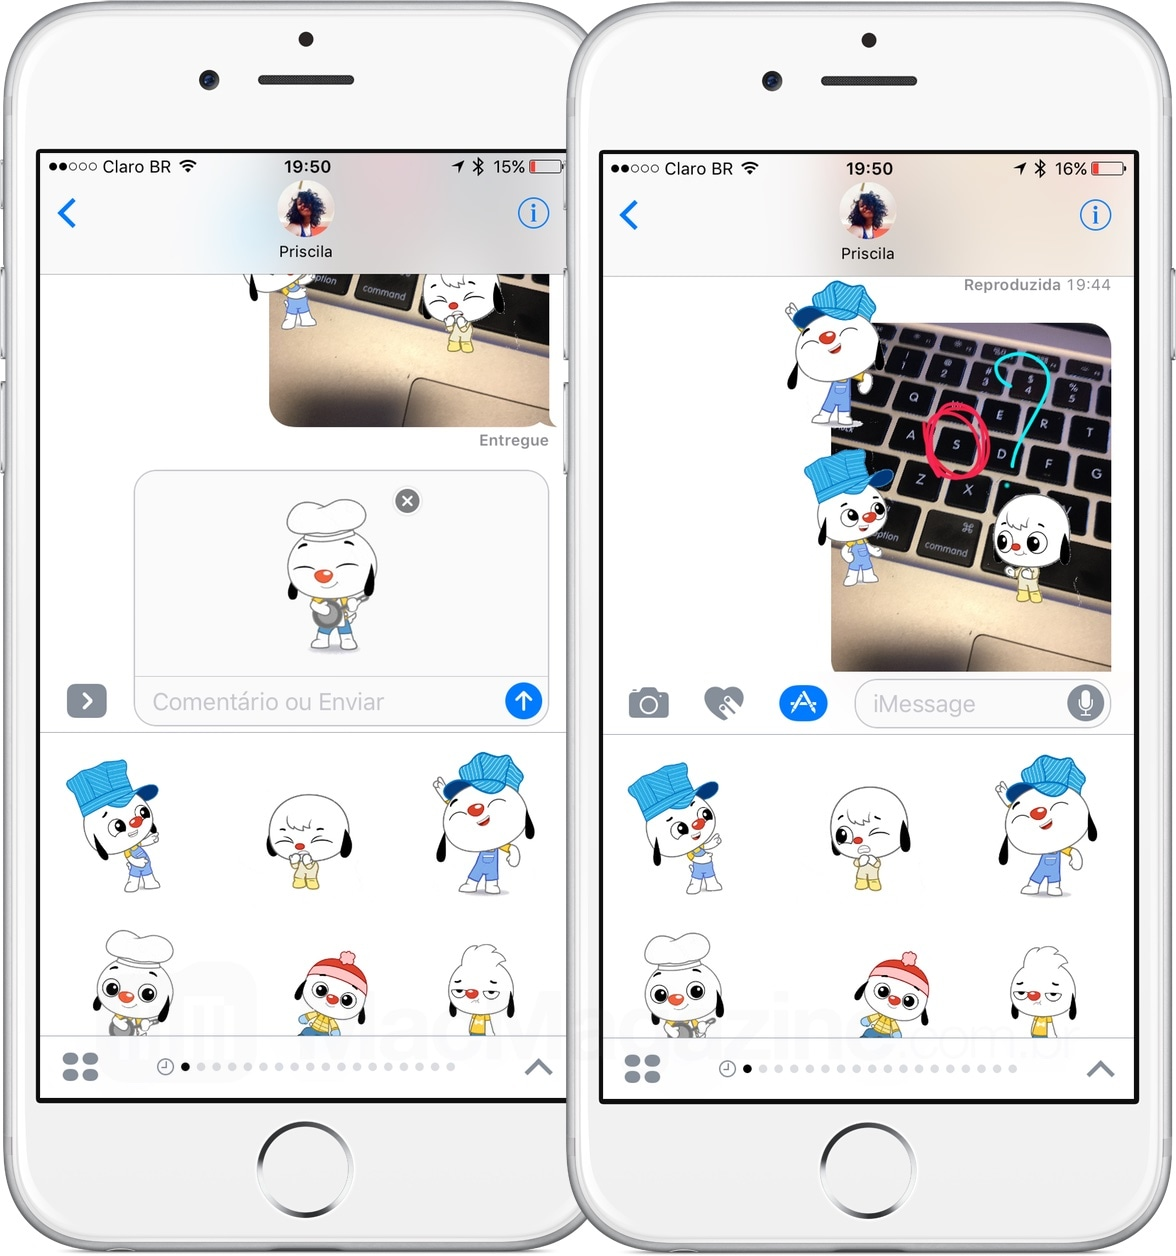 Adesivos no iMessage do iOS 10